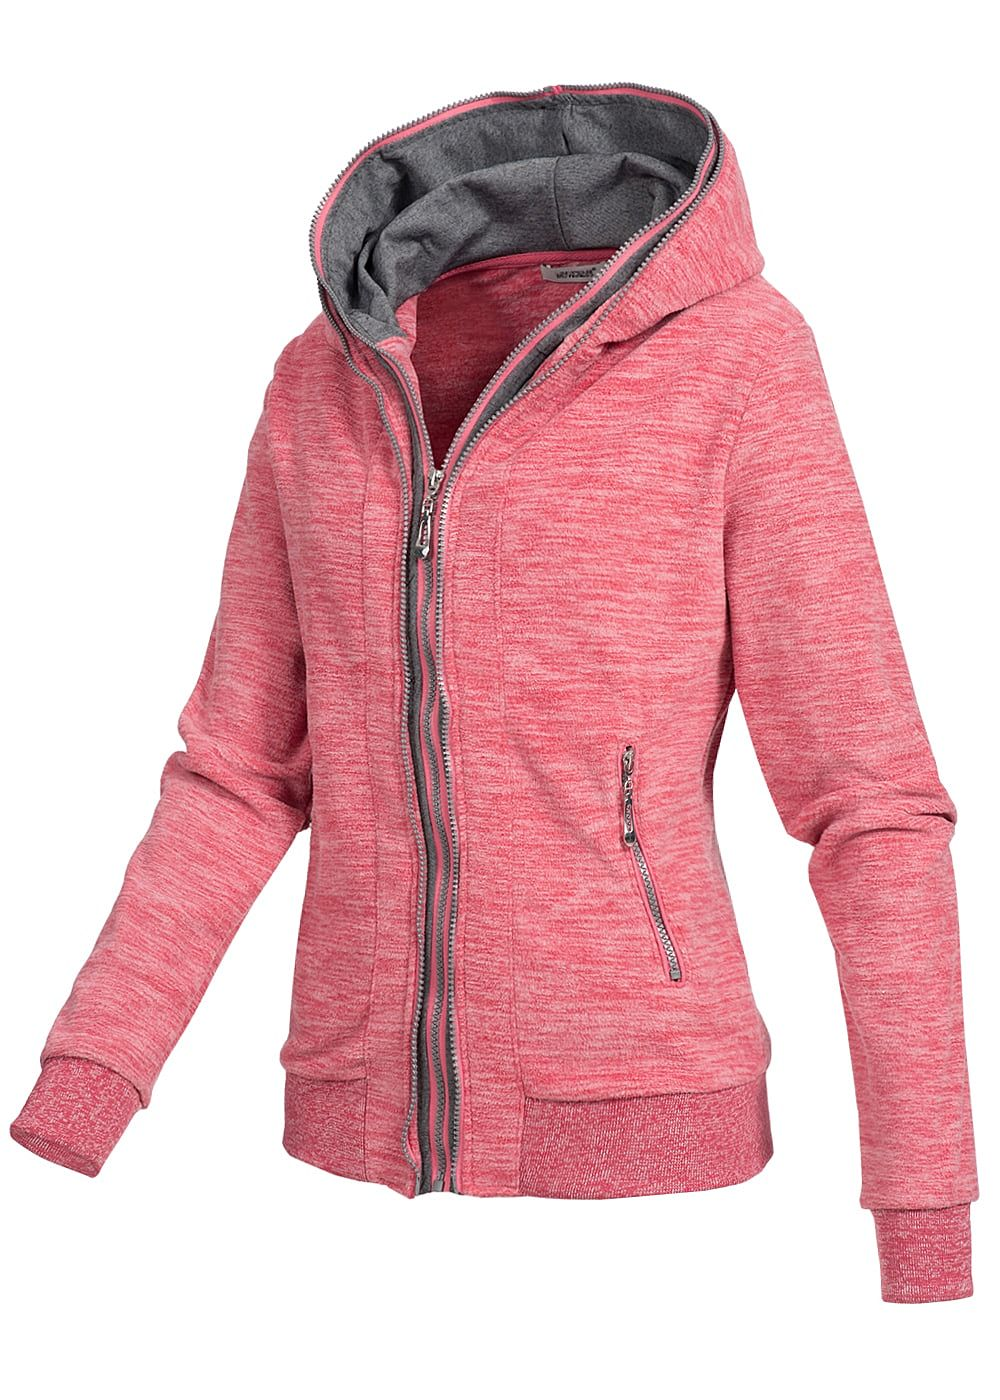 seventyseven lifestyle damen fleece zip hoodie kapuze 2 taschen pink 77onlineshop. Black Bedroom Furniture Sets. Home Design Ideas